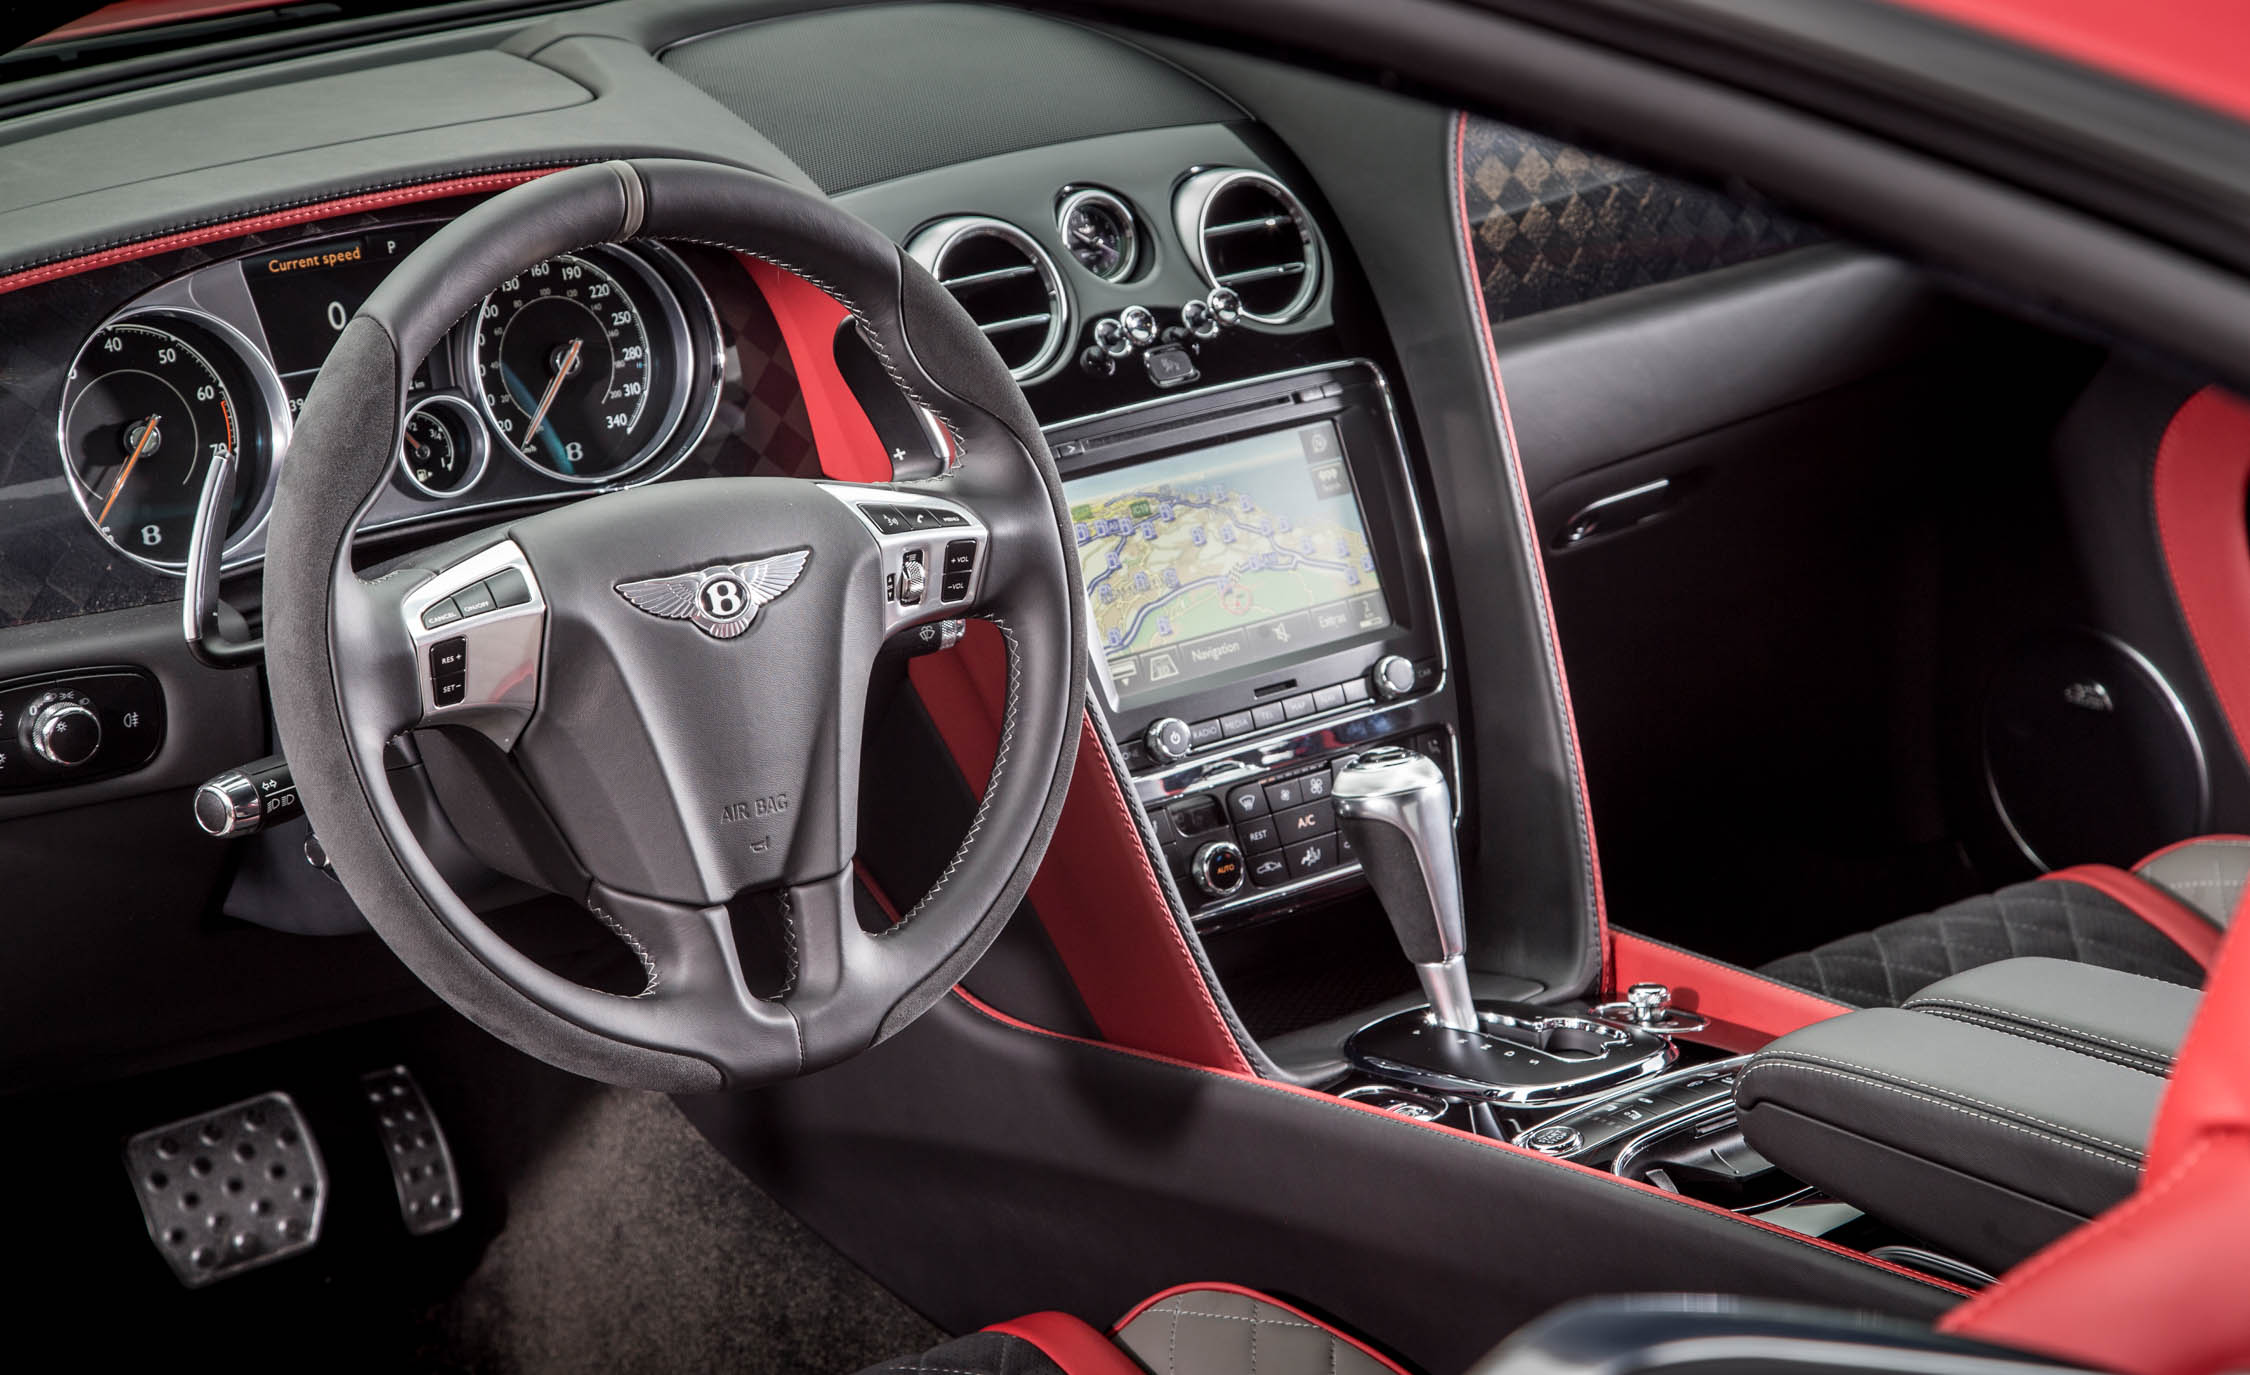 2018 Bentley Continental Supersports Interior Driver Cockpit And Dash (Photo 12 of 66)